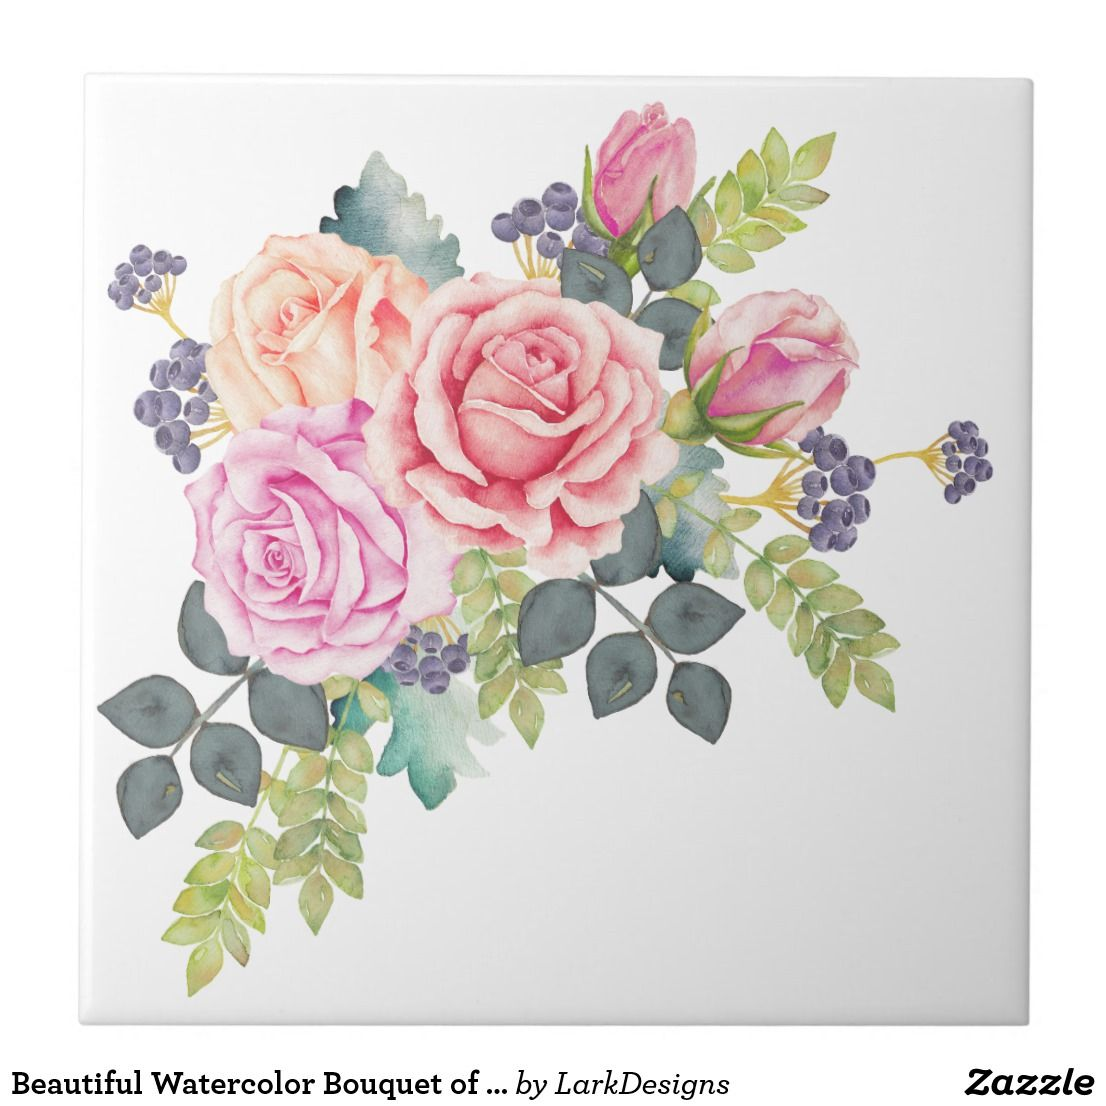 Pin By Gul Vddries On Home Decor Patio Garden No Sections Flower Illustration Floral Painting Watercolor Rose